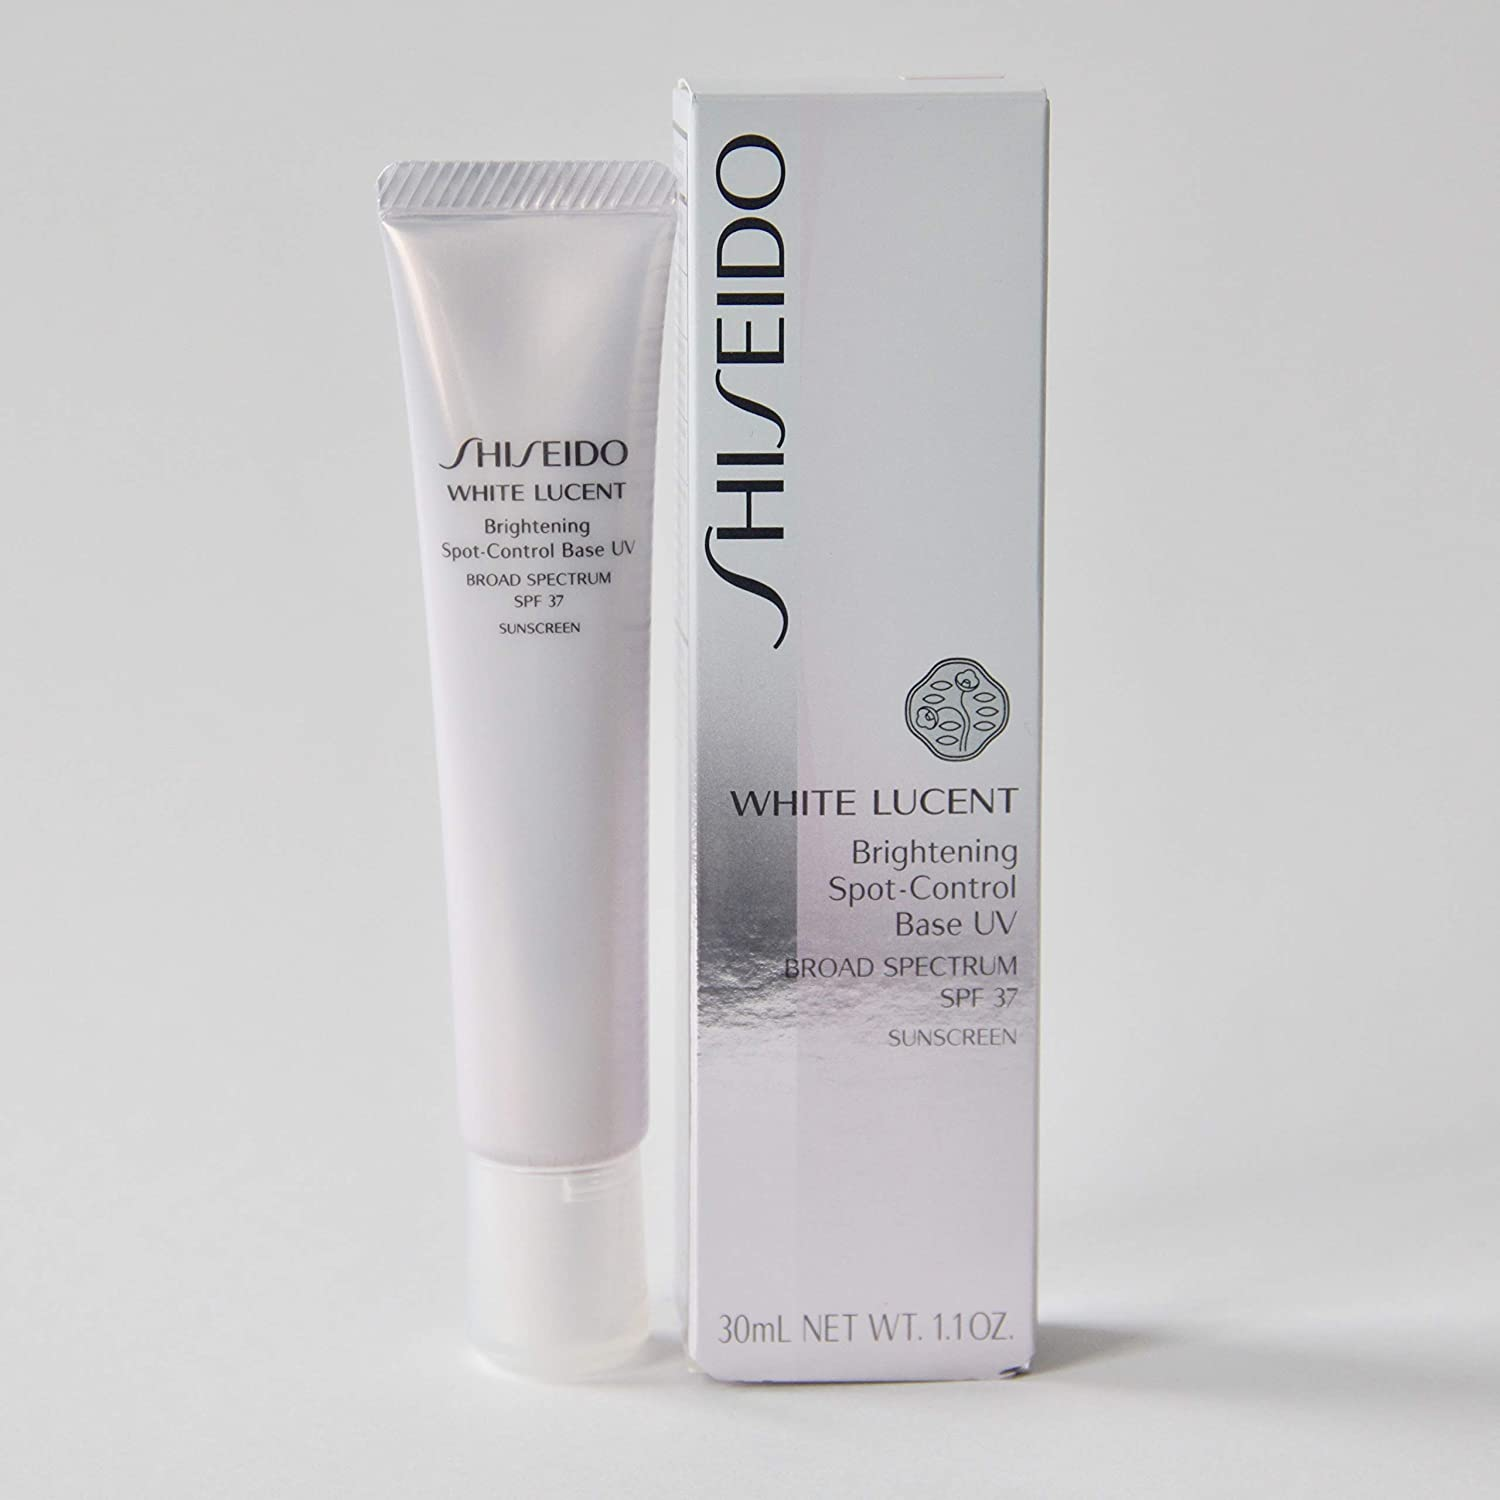 Shiseido White Lucent Brightening Spot Control Base UV Broad Spectrum SPF 37 Sunscreen Color - PINK